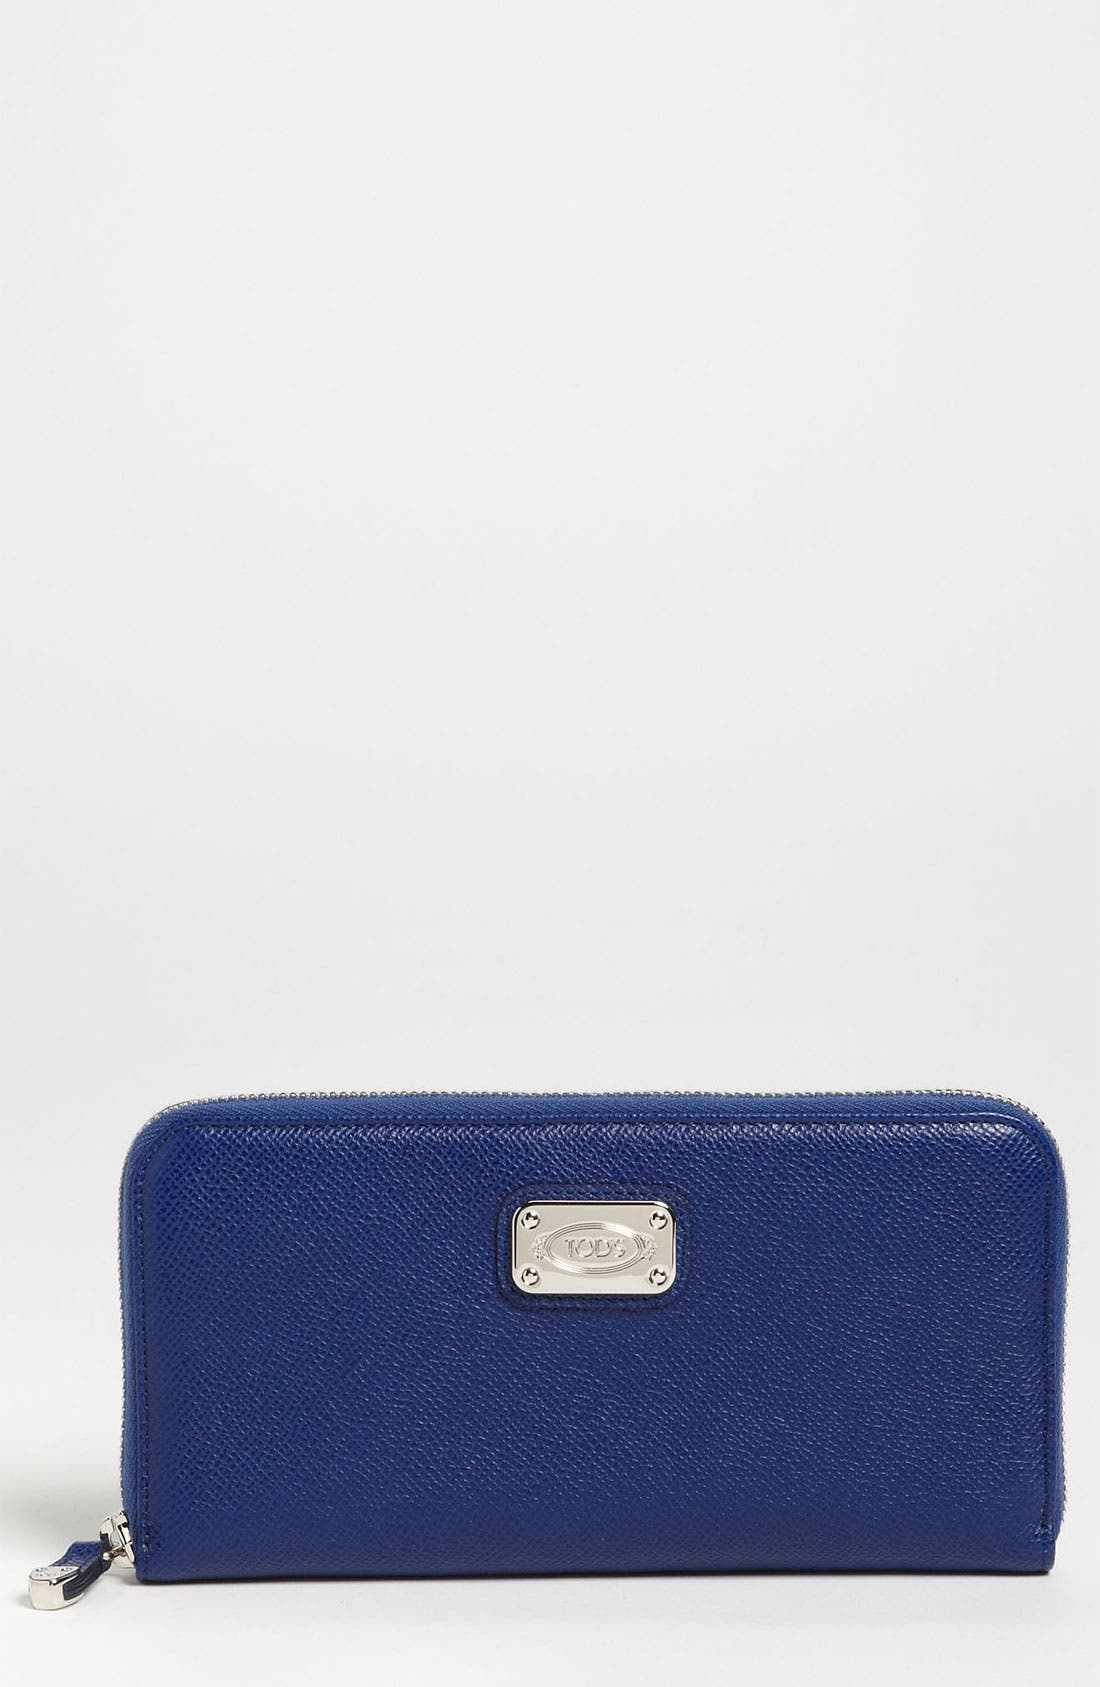 Main Image - Tod's 'D-Styling' Zip Around Wallet